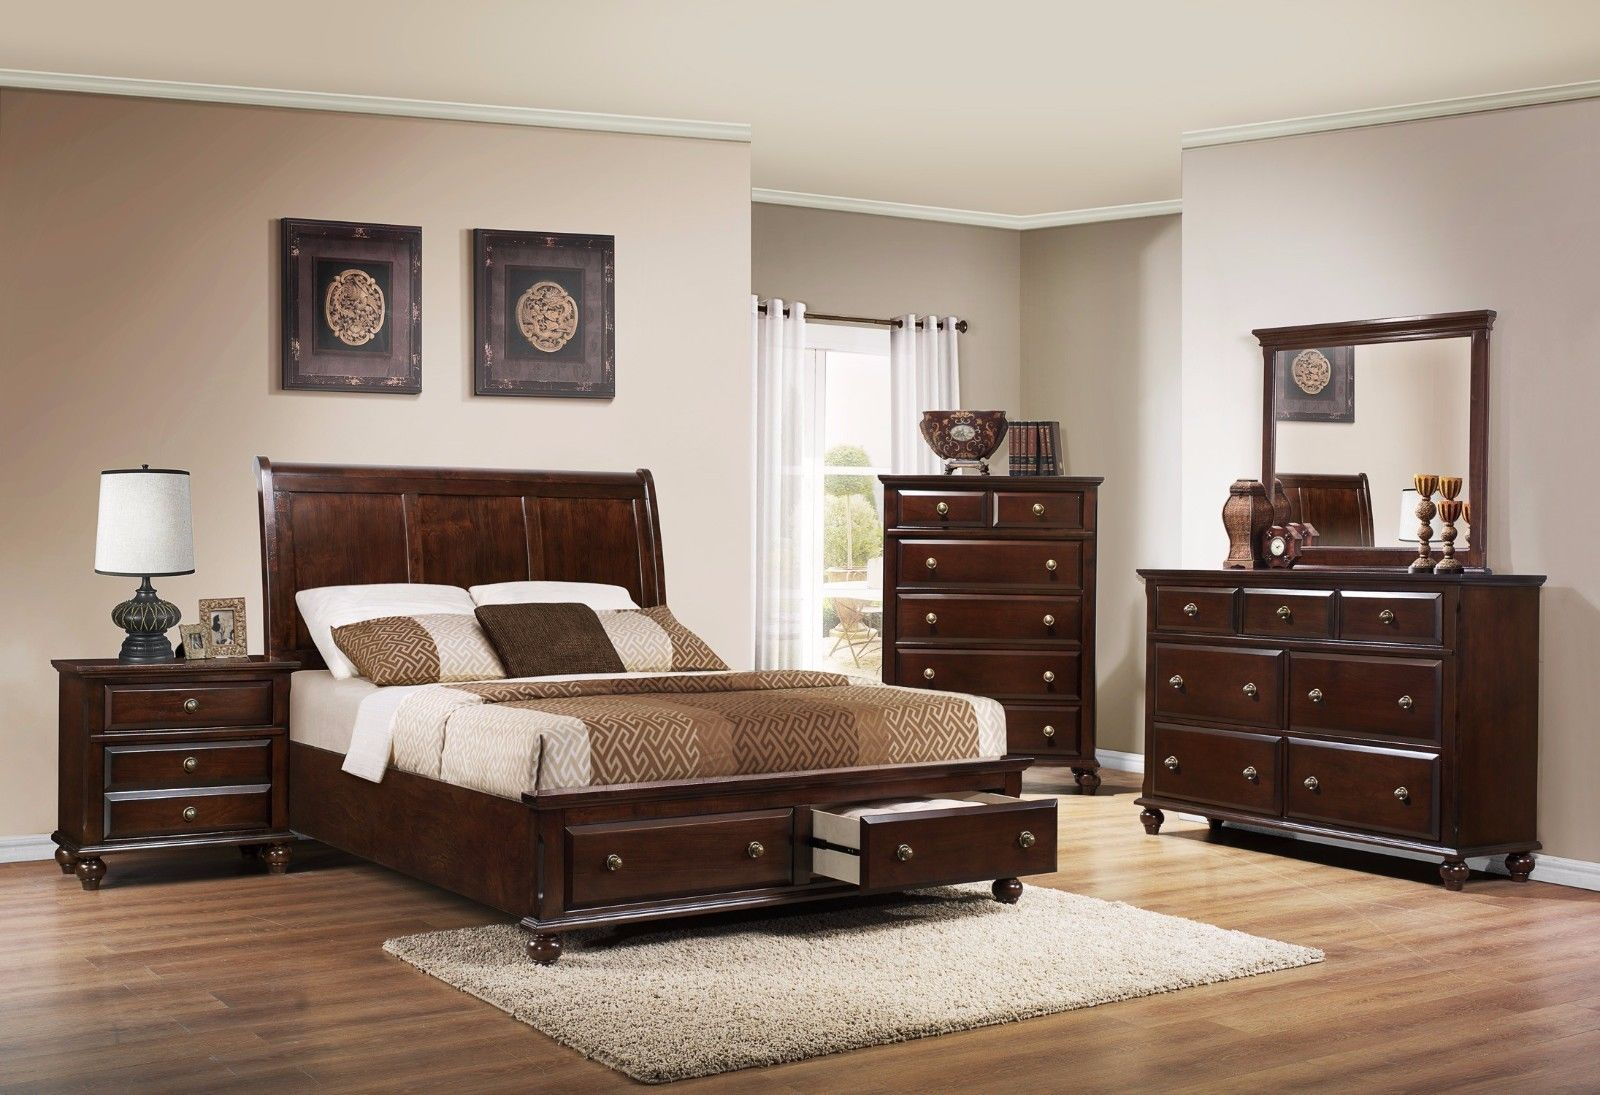 Crown Mark RB6075 Portsmouth Queen Size Bedroom Set 5pc.Brown Contemporary Style